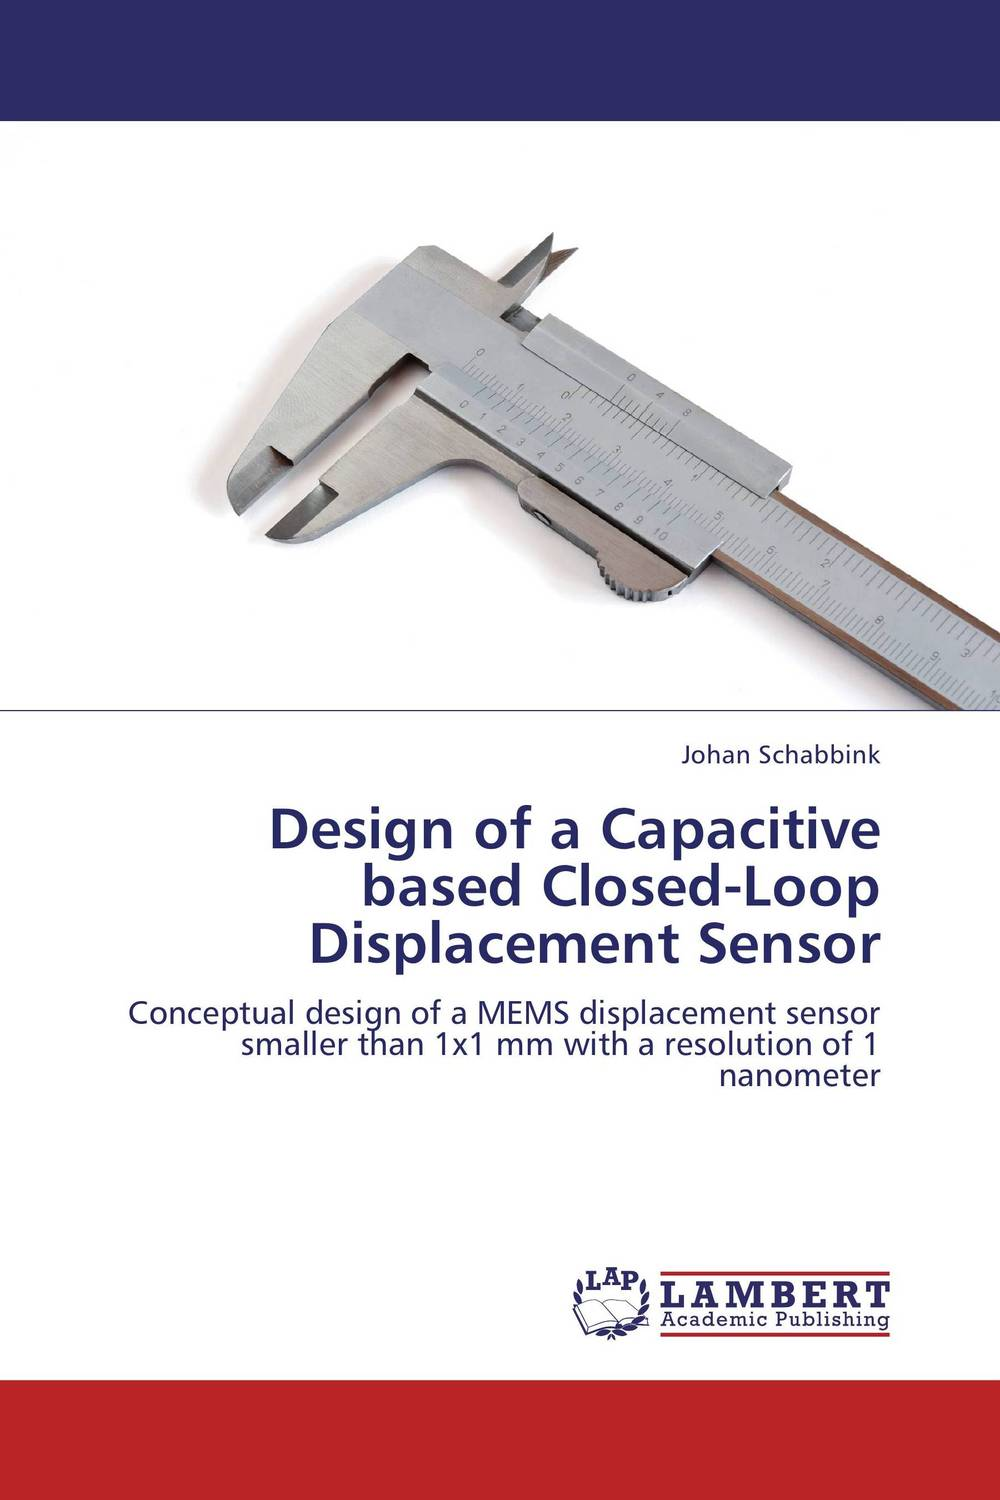 Design of a Capacitive based Closed-Loop Displacement Sensor пылесборники filtero sie 01 4 экстра